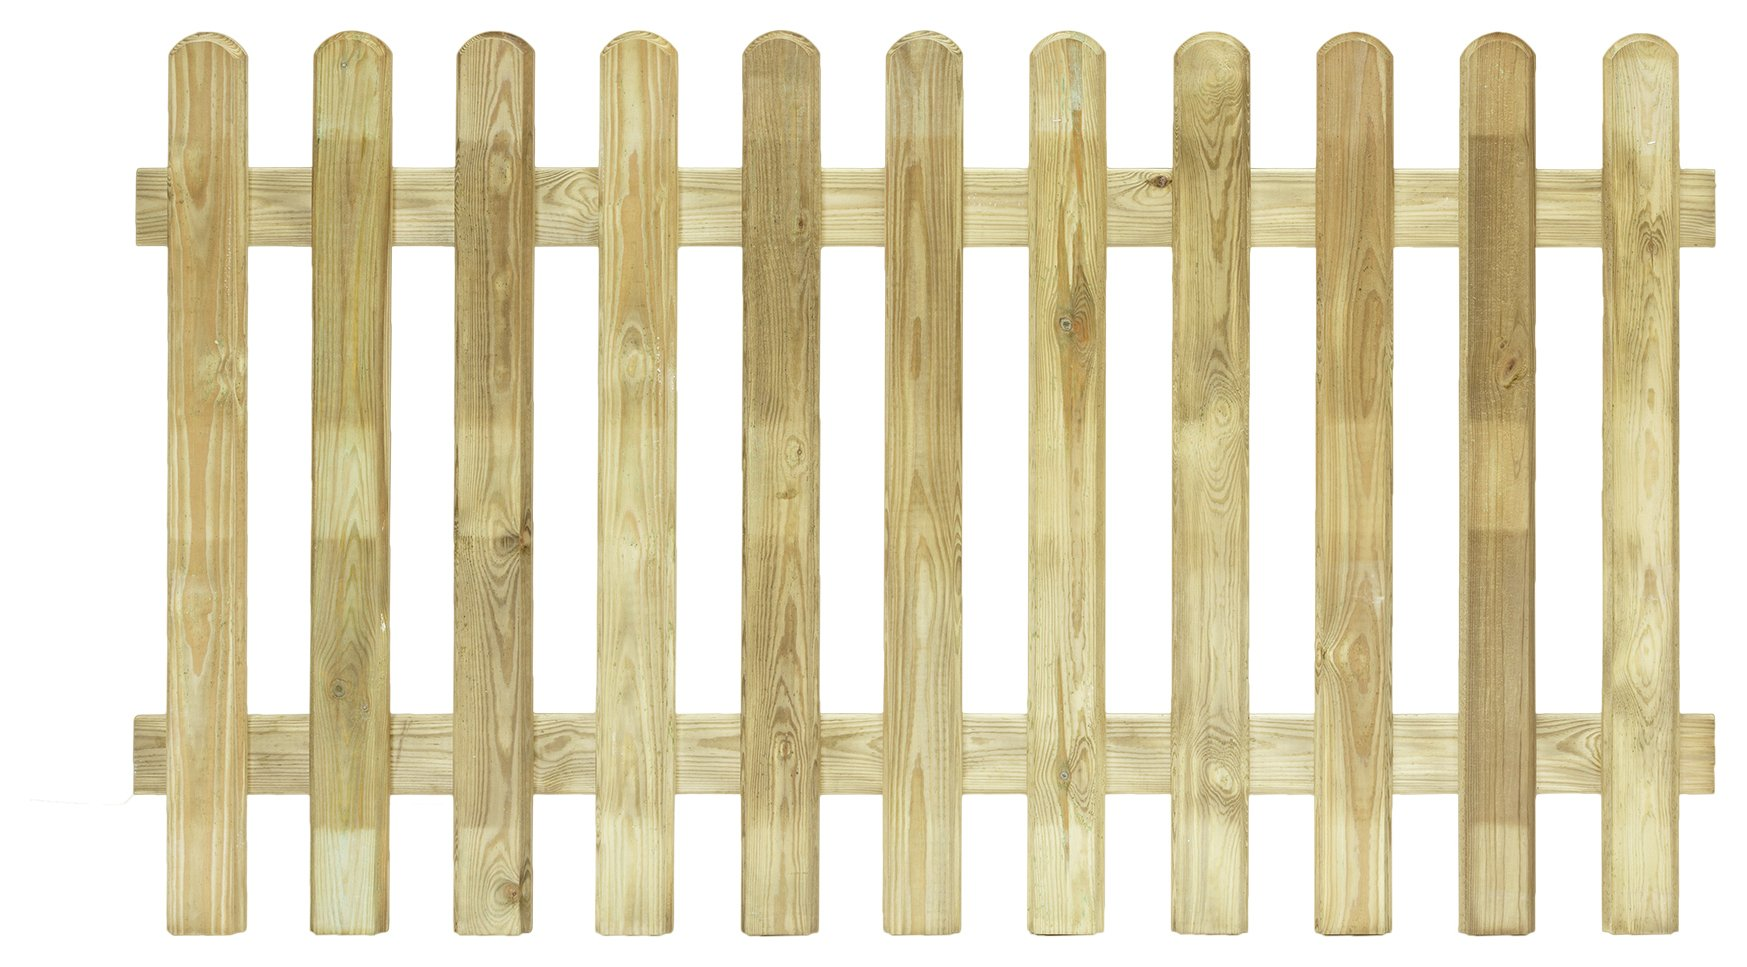 Grange Fencing 1m Elite Profiled Picket Fence - Pack of 5. lowest price